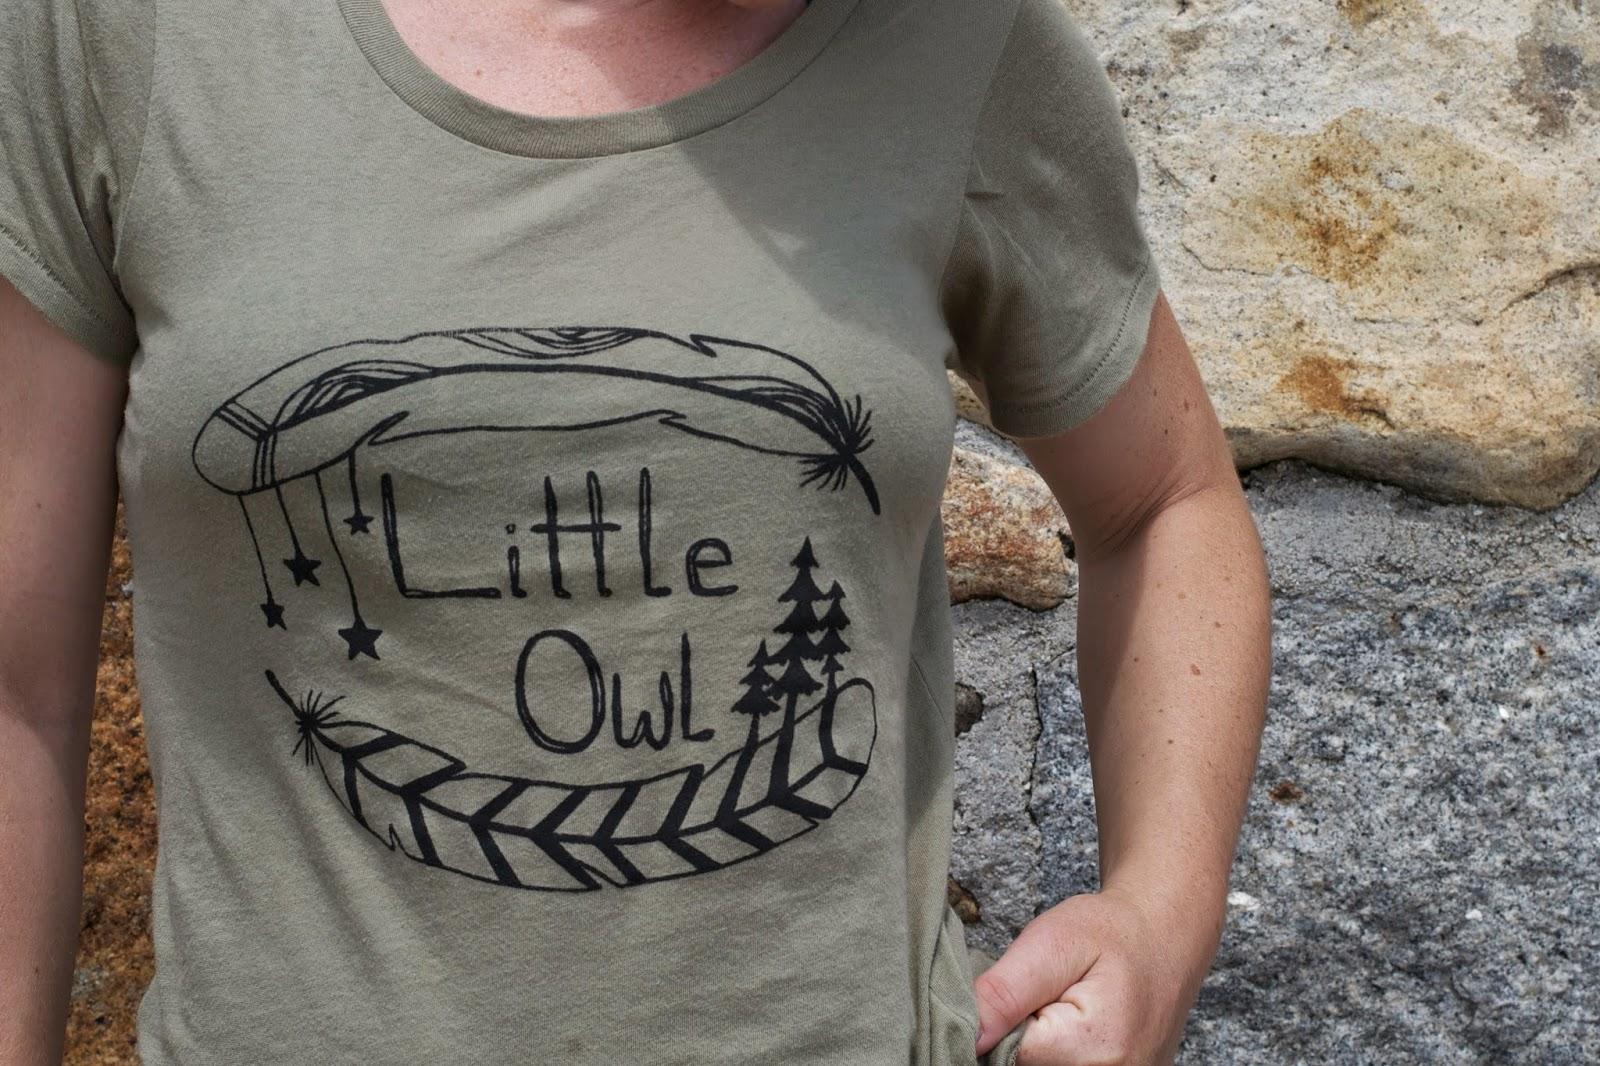 New Little Owl design/logo!